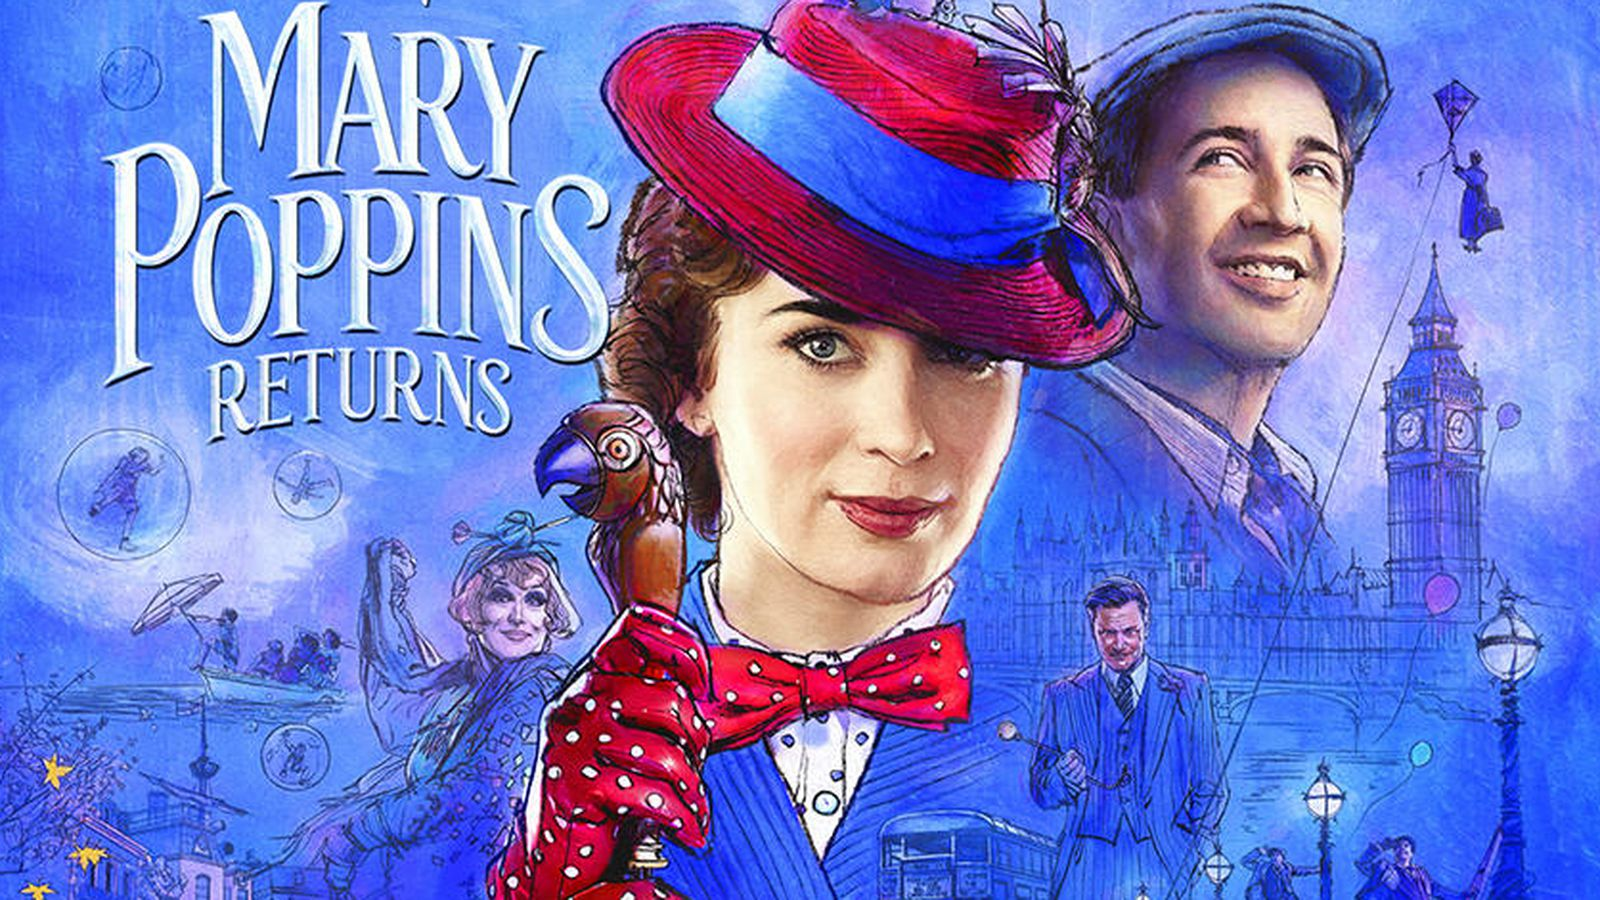 Still A Sweet Spoonful of Sugar MARY POPPINS RETURNS A FILM REVIEW